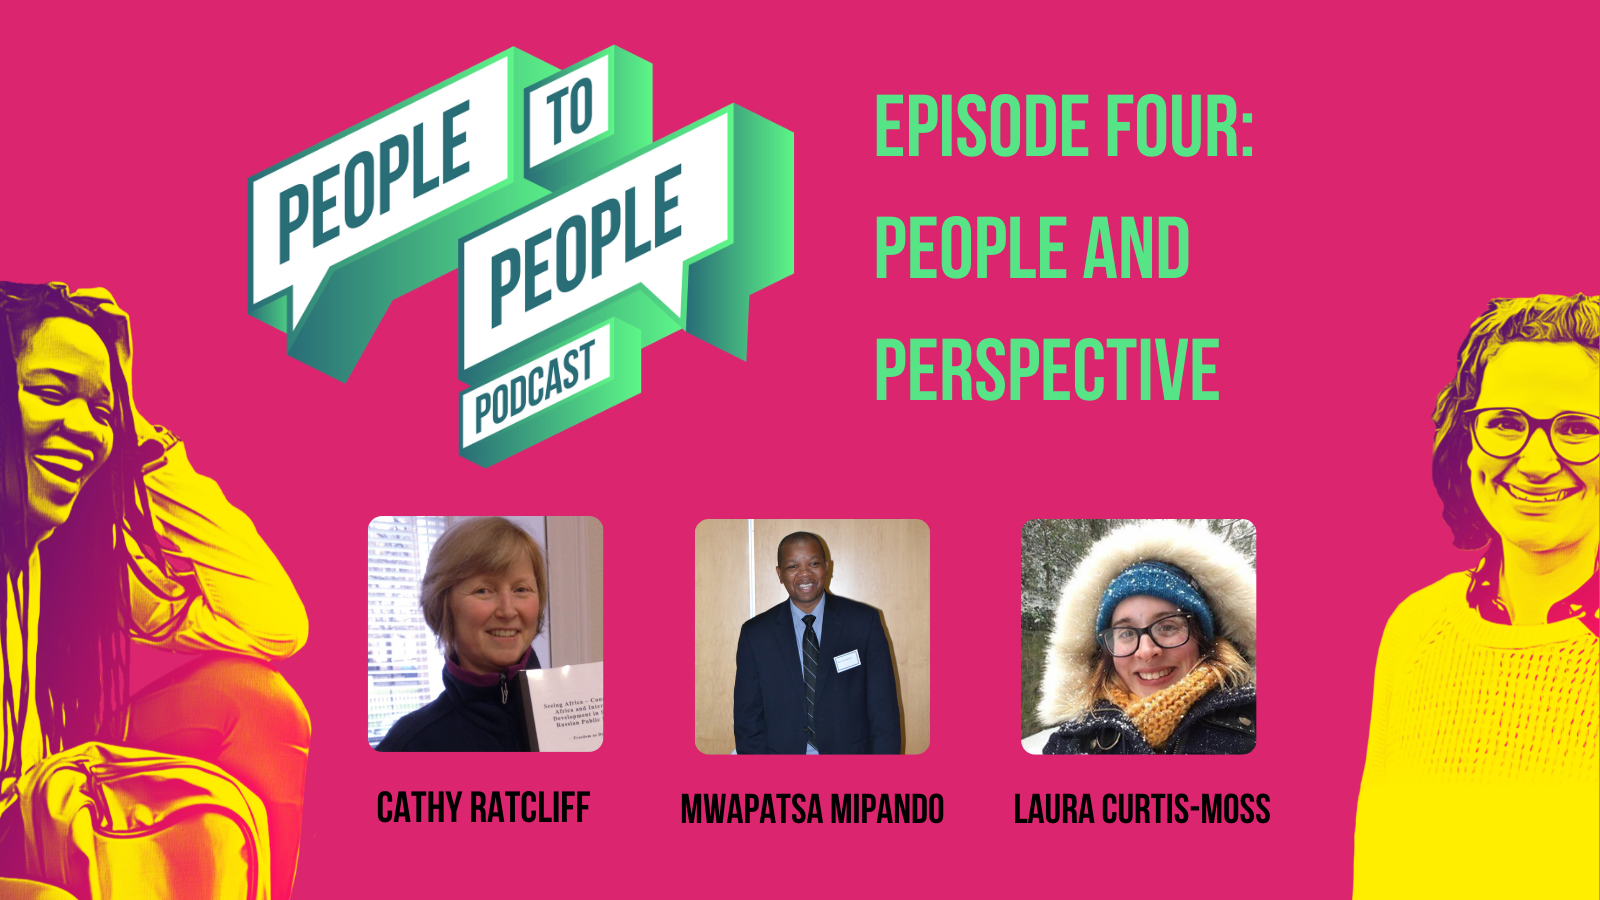 Episode Four People and Perspective Twitter